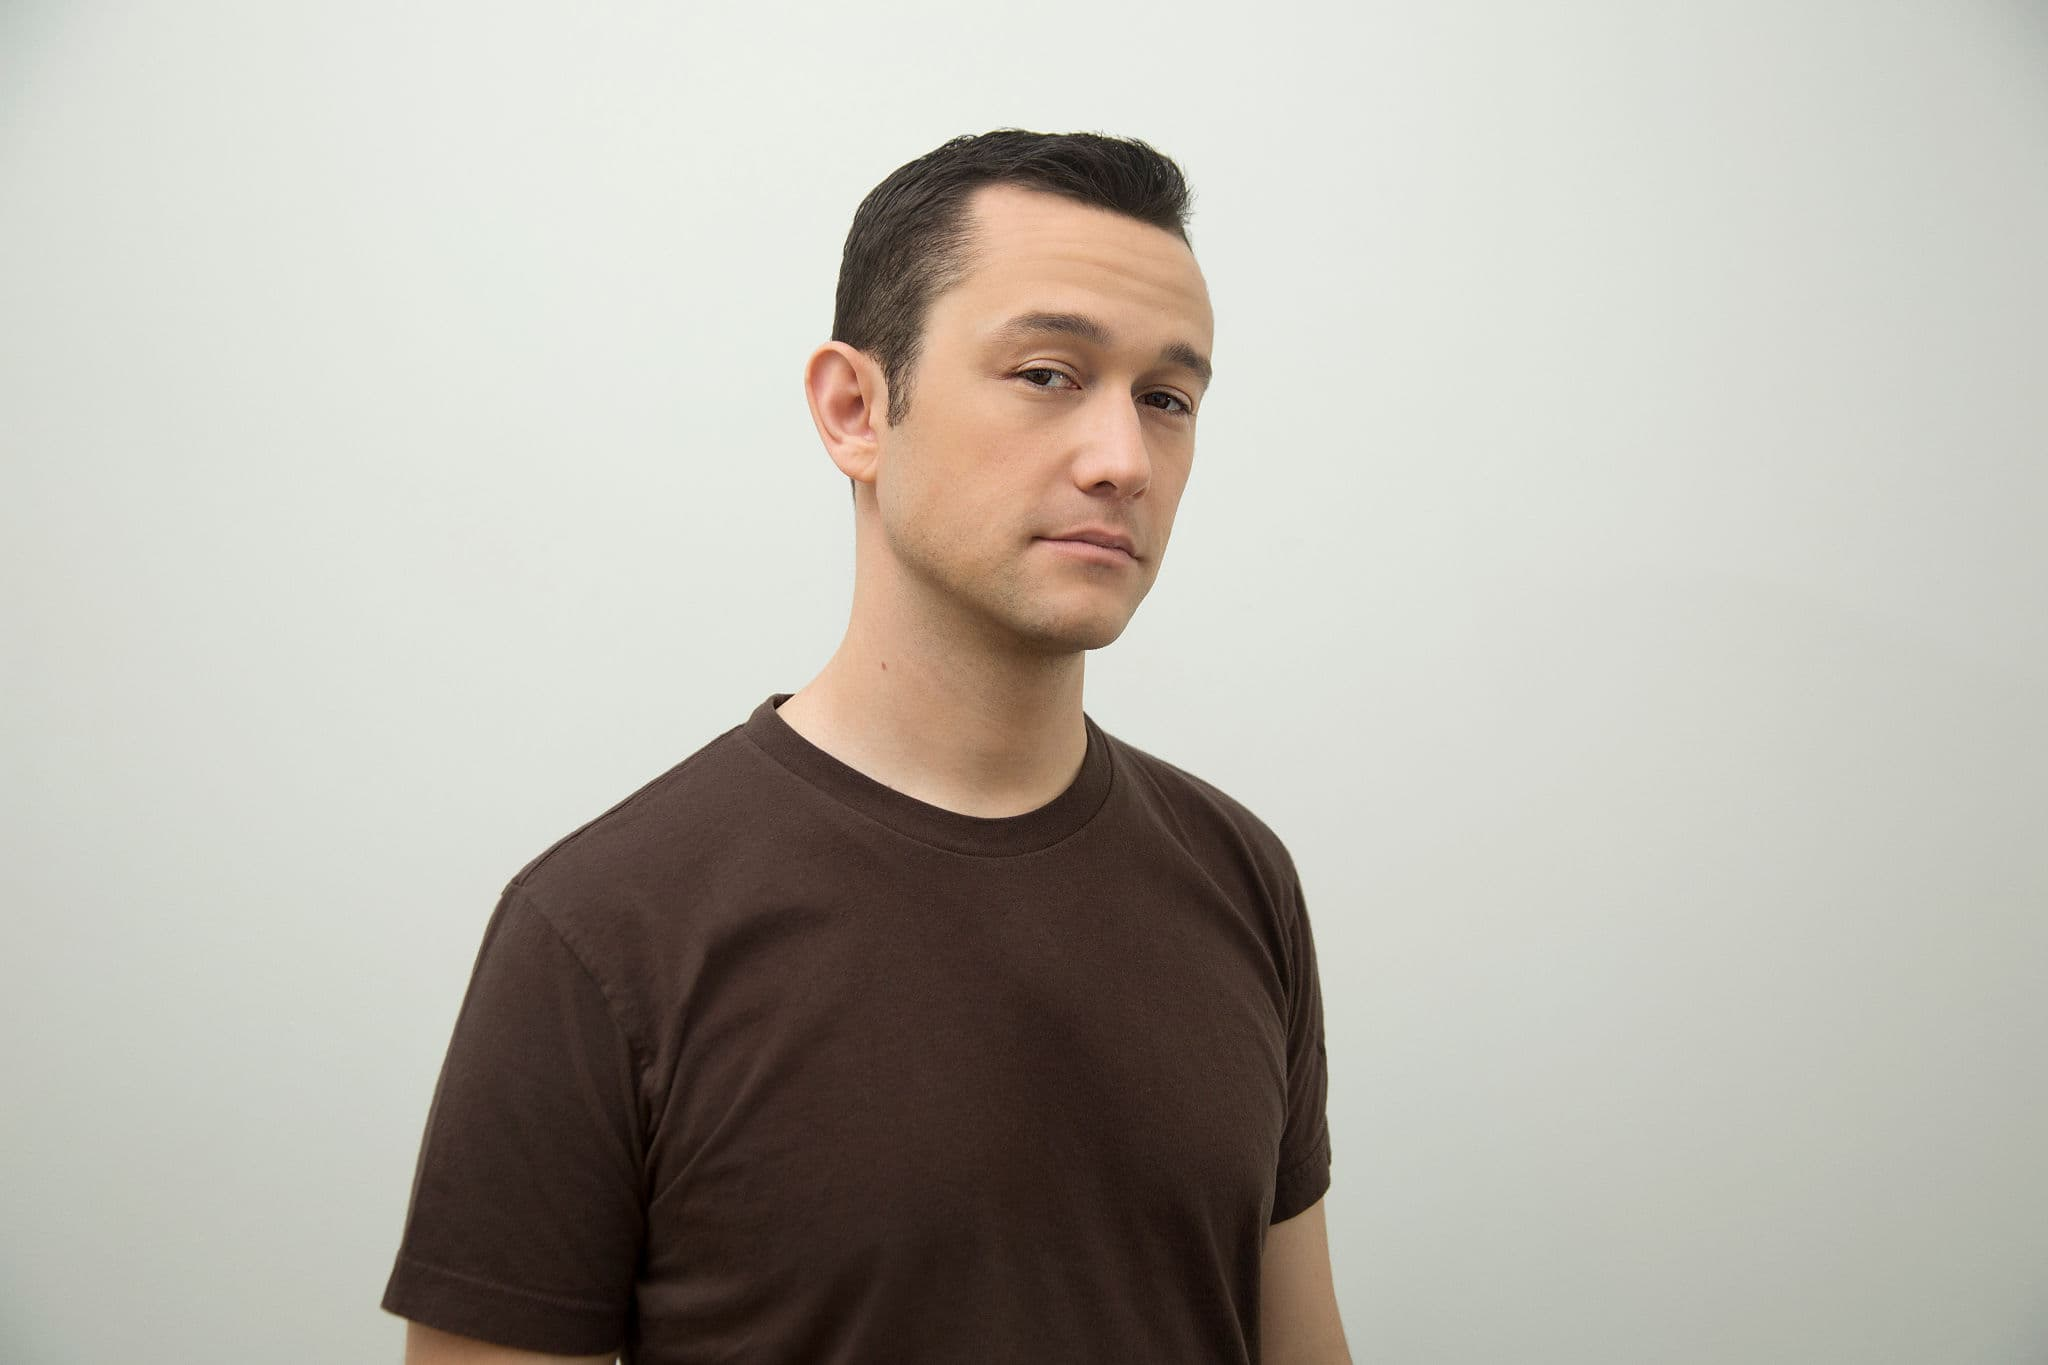 Joseph Gordon Levitt is American actor